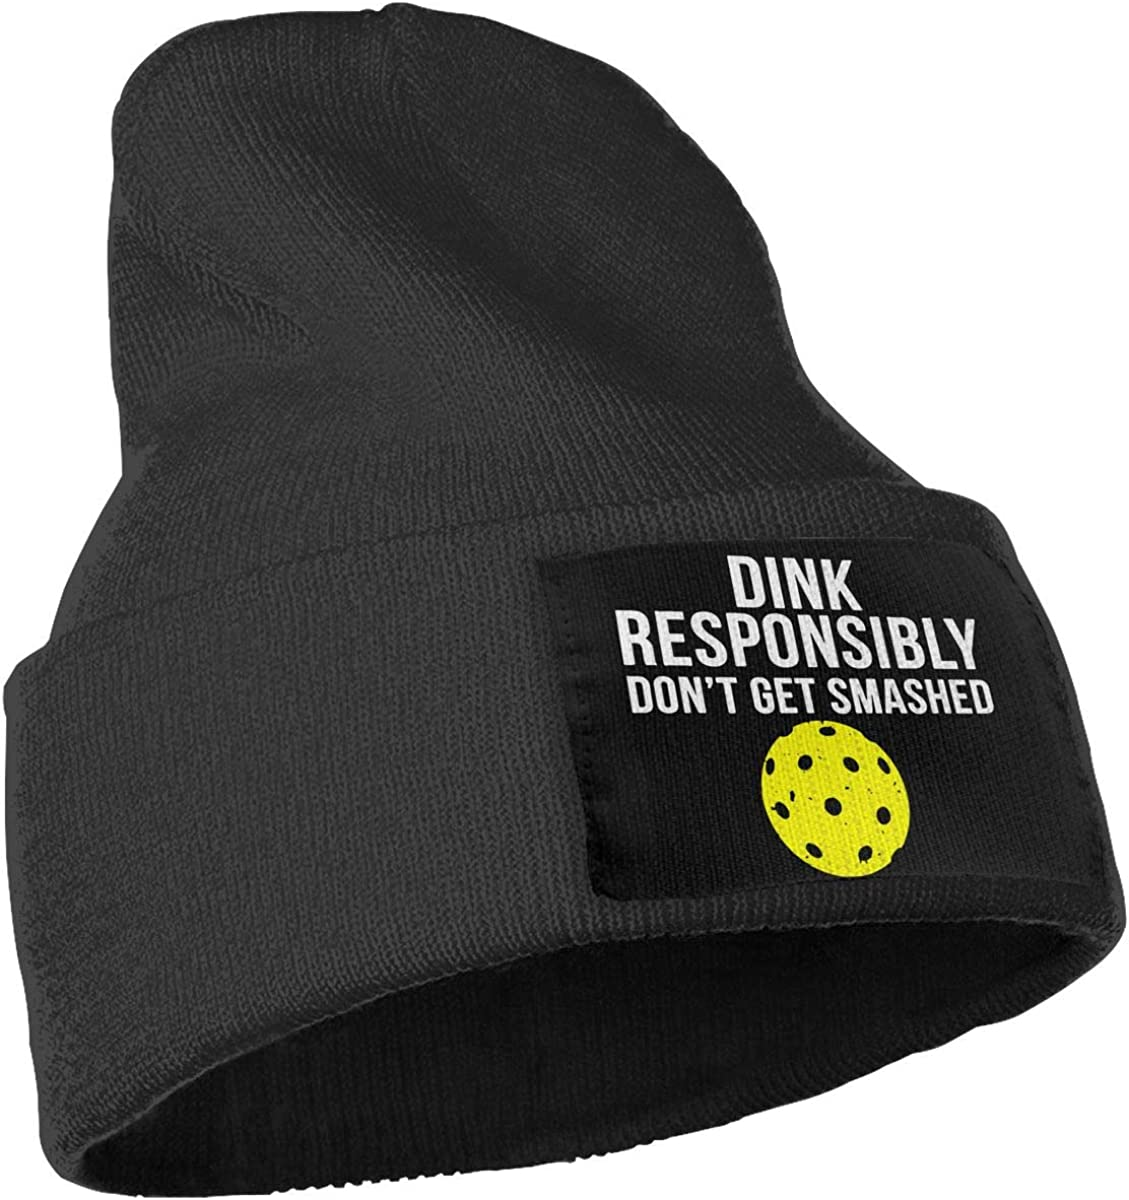 COLLJL-8 Men /& Women Funny Pickleball Outdoor Warm Knit Beanies Hat Soft Winter Skull Caps